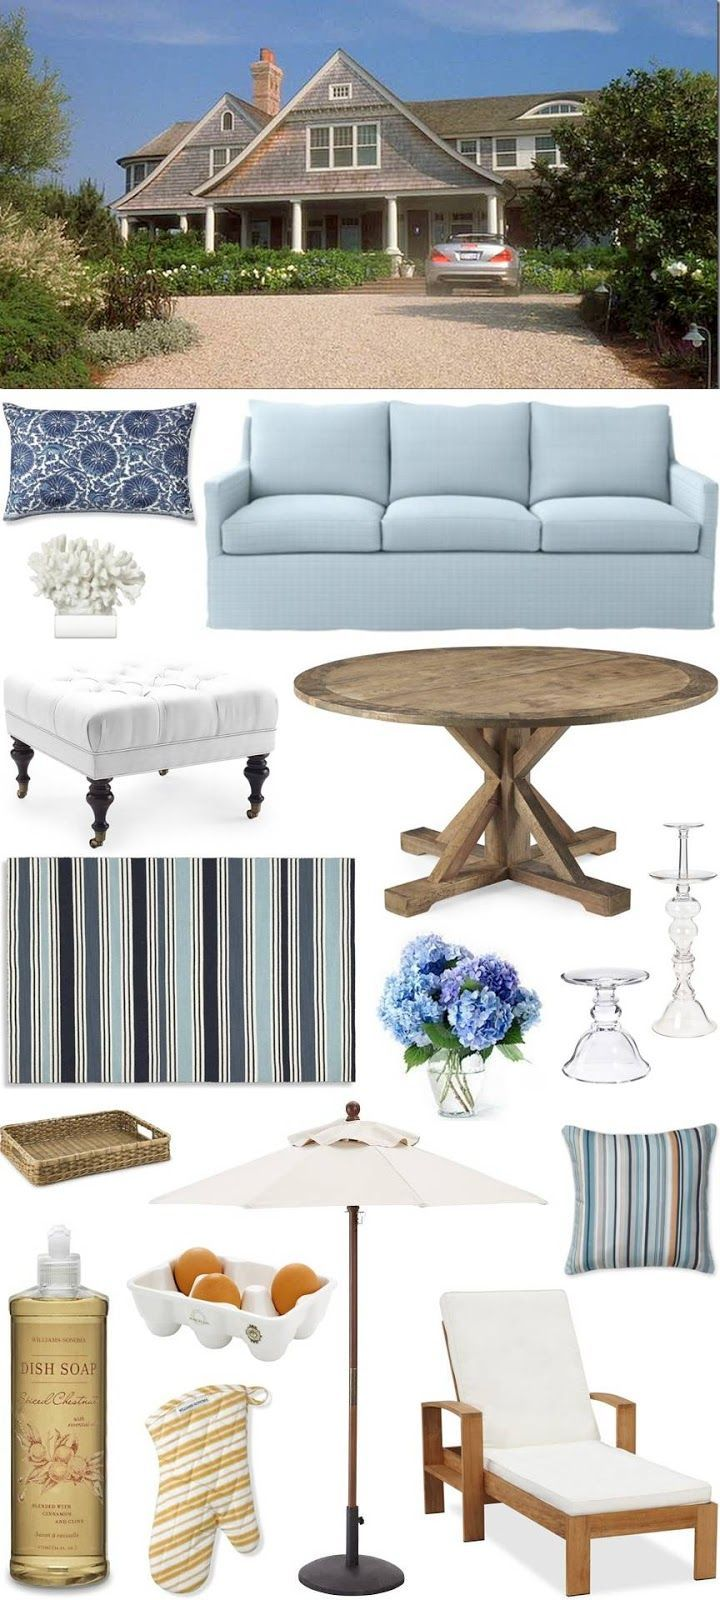 50 best something 39 s gotta give house images on pinterest for Hamptons beach house interiors